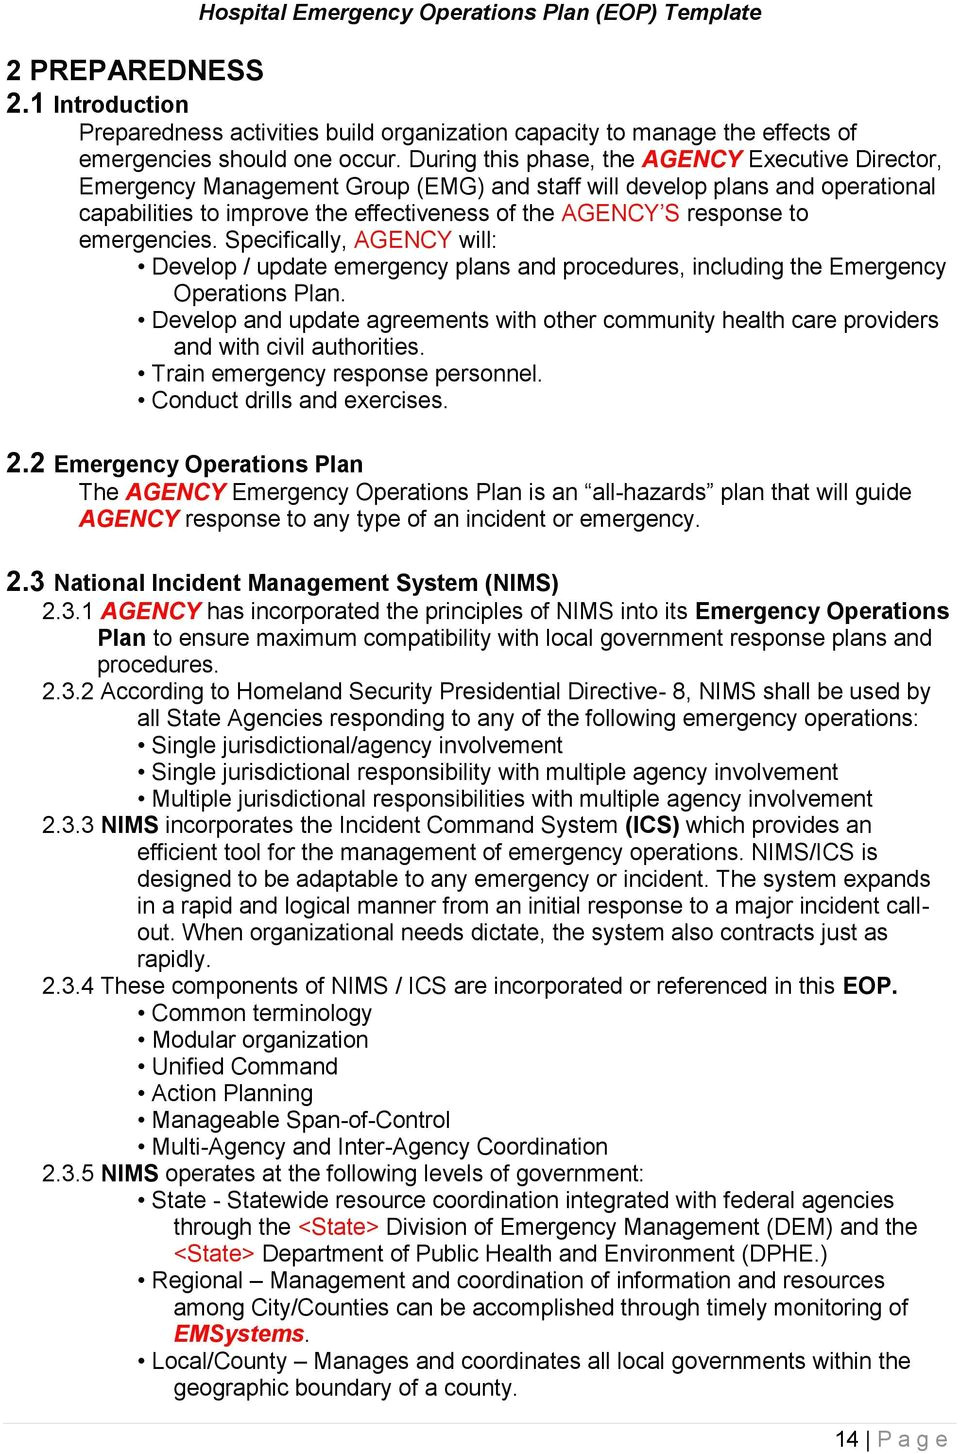 12981916 agency name hospital emergency operations plan eop template